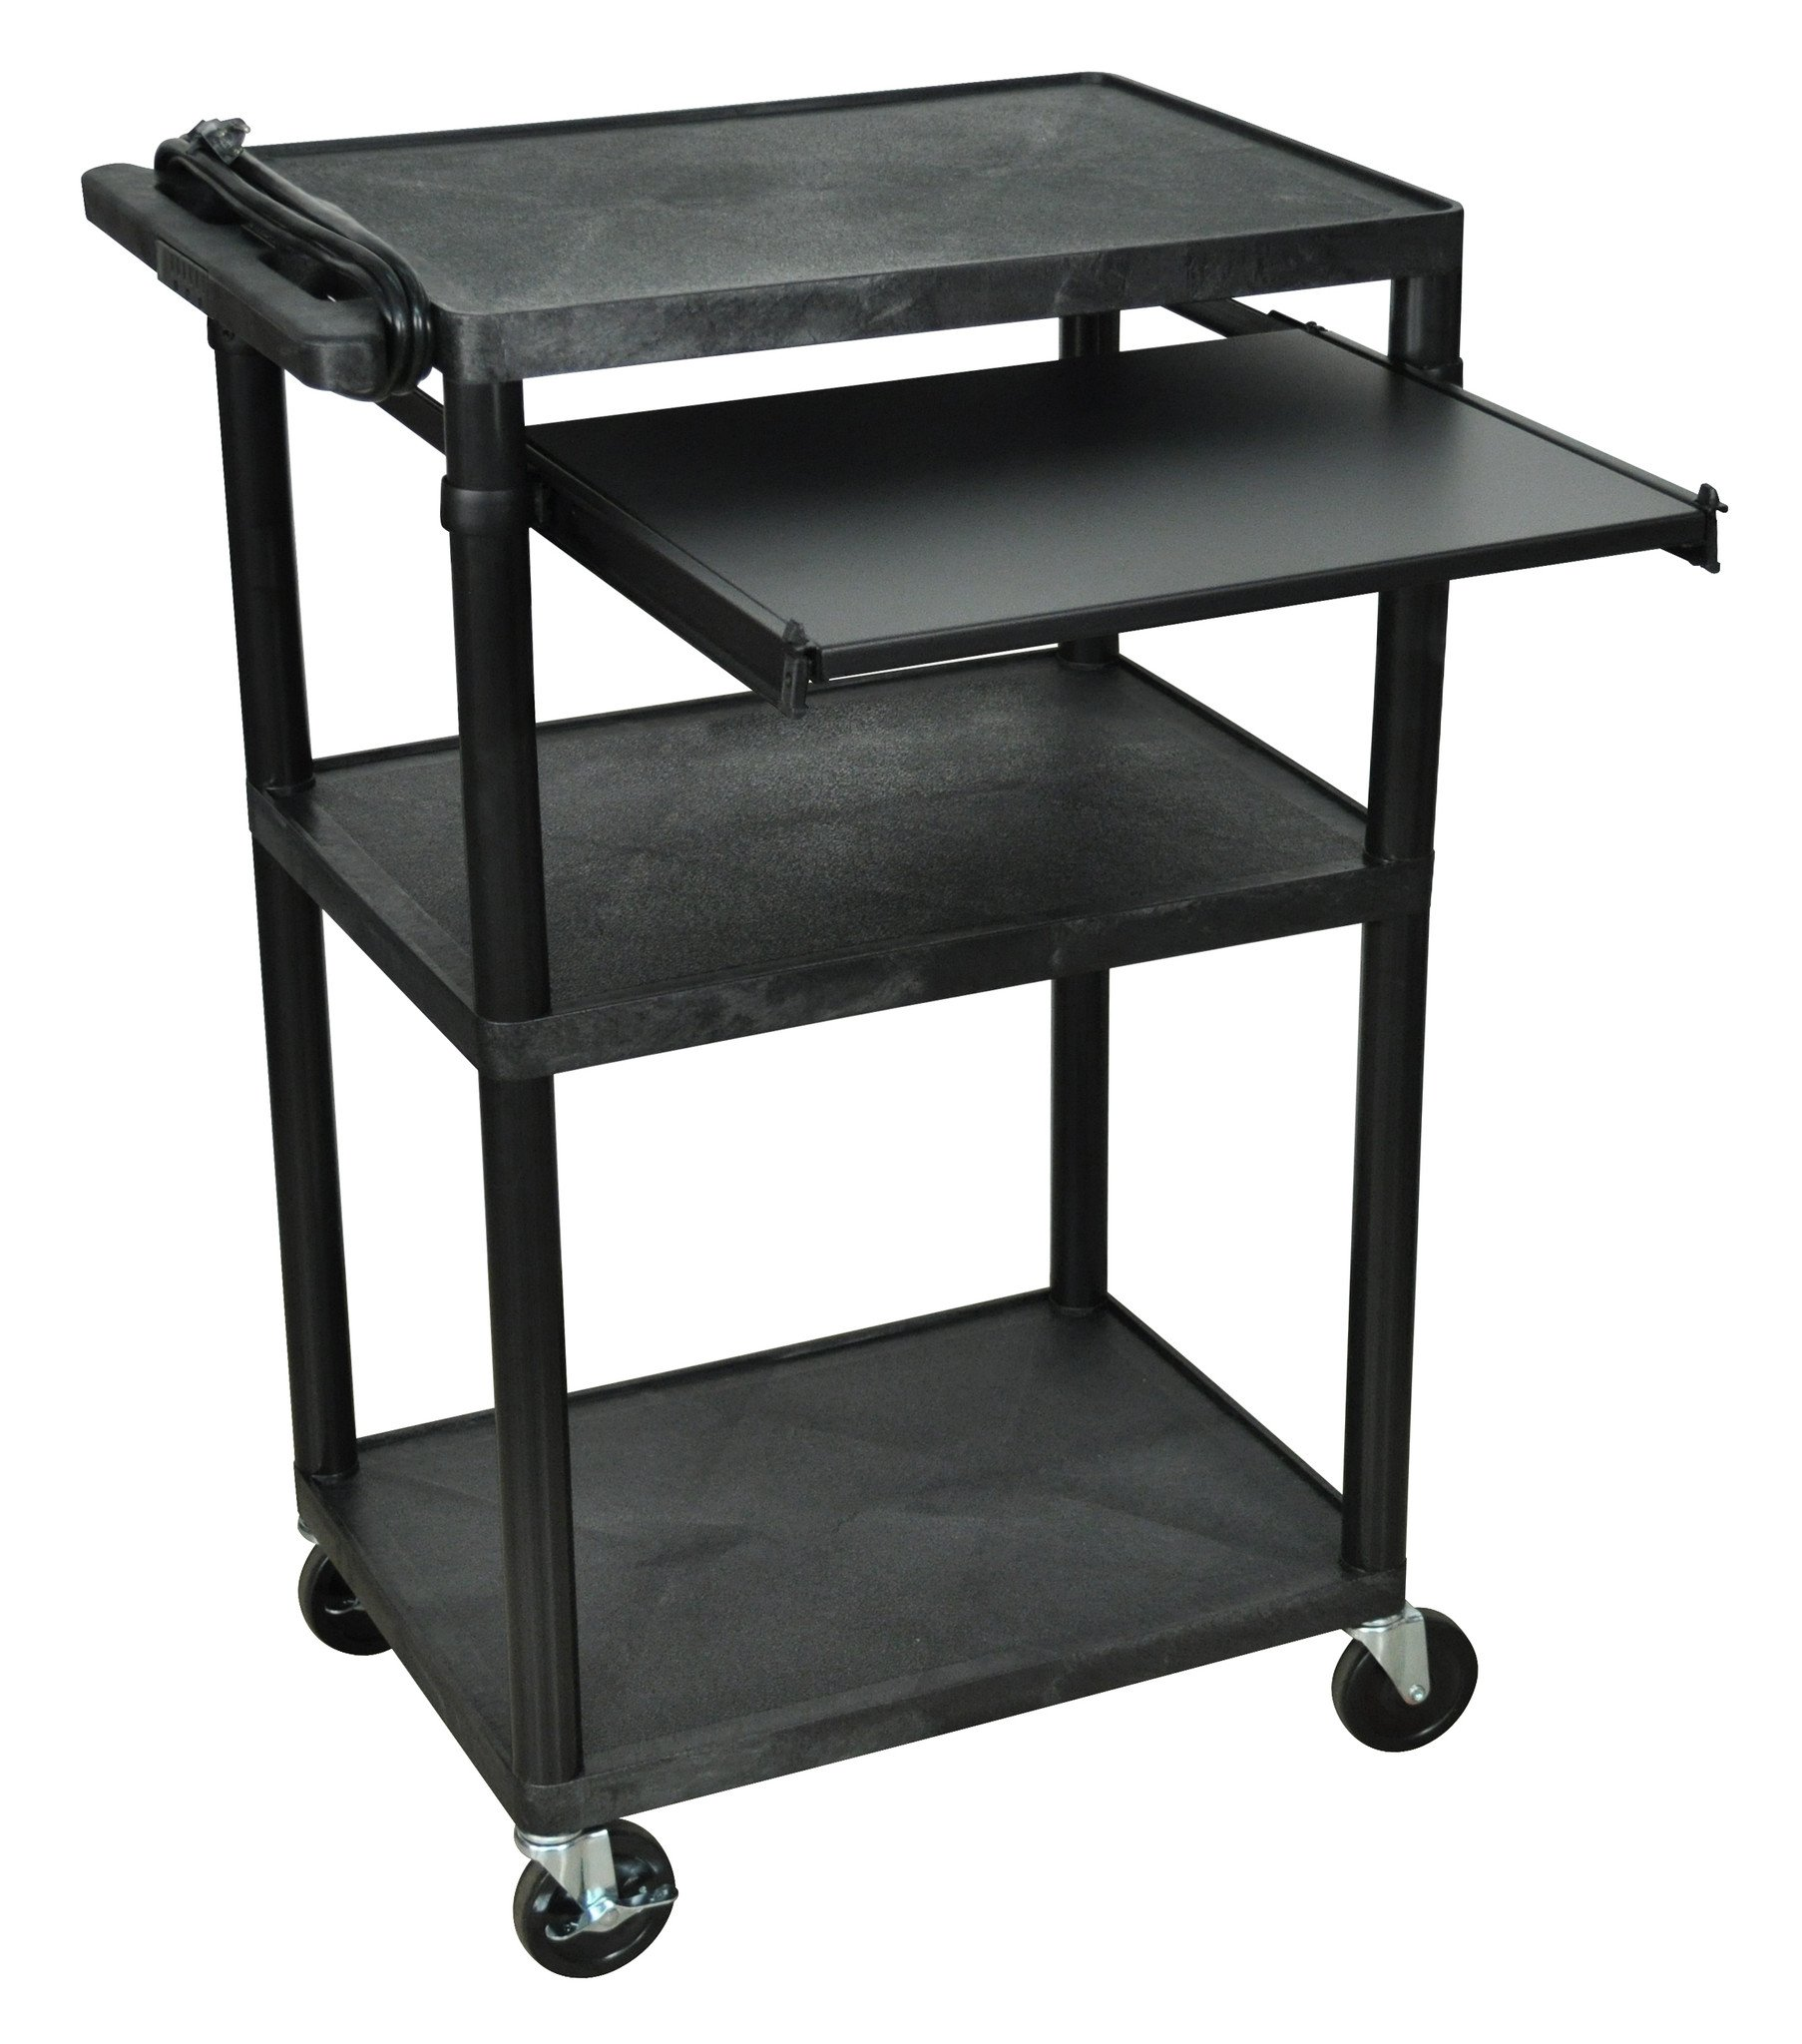 Luxor LP42LE-B - AV Carts 3 Shelves